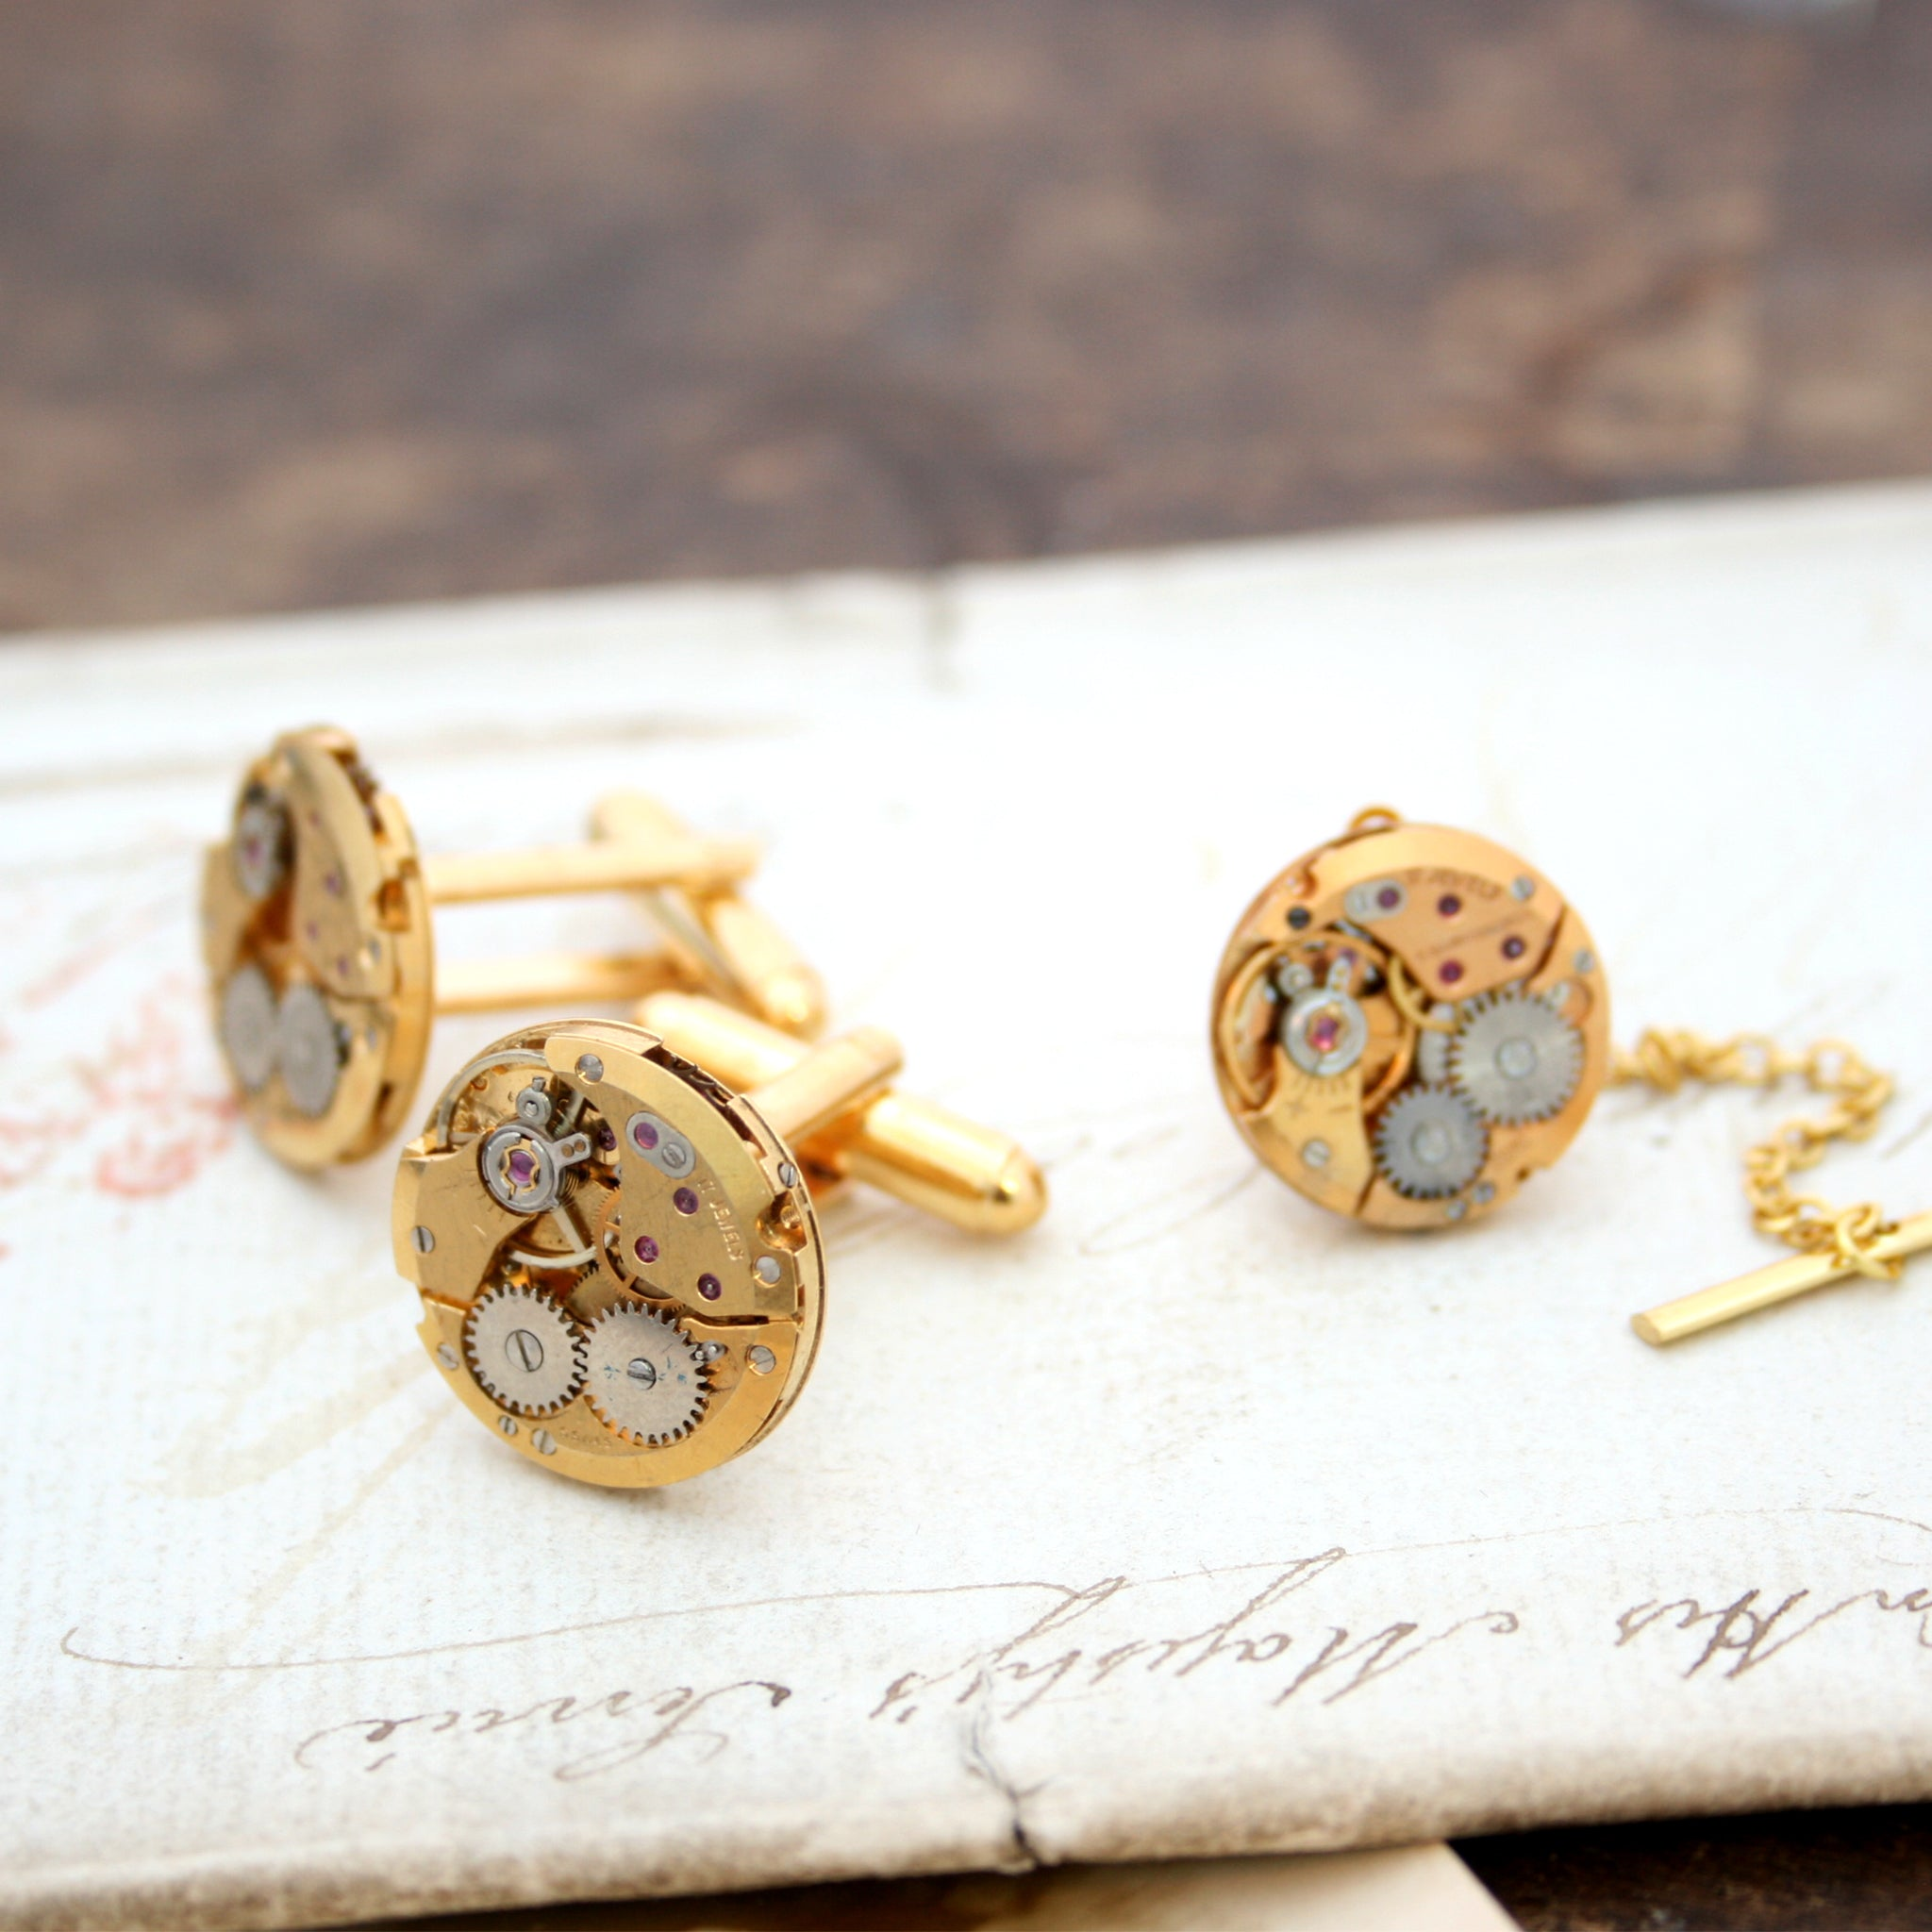 Gold Tie Tack and Cufflinks Steampunk Set